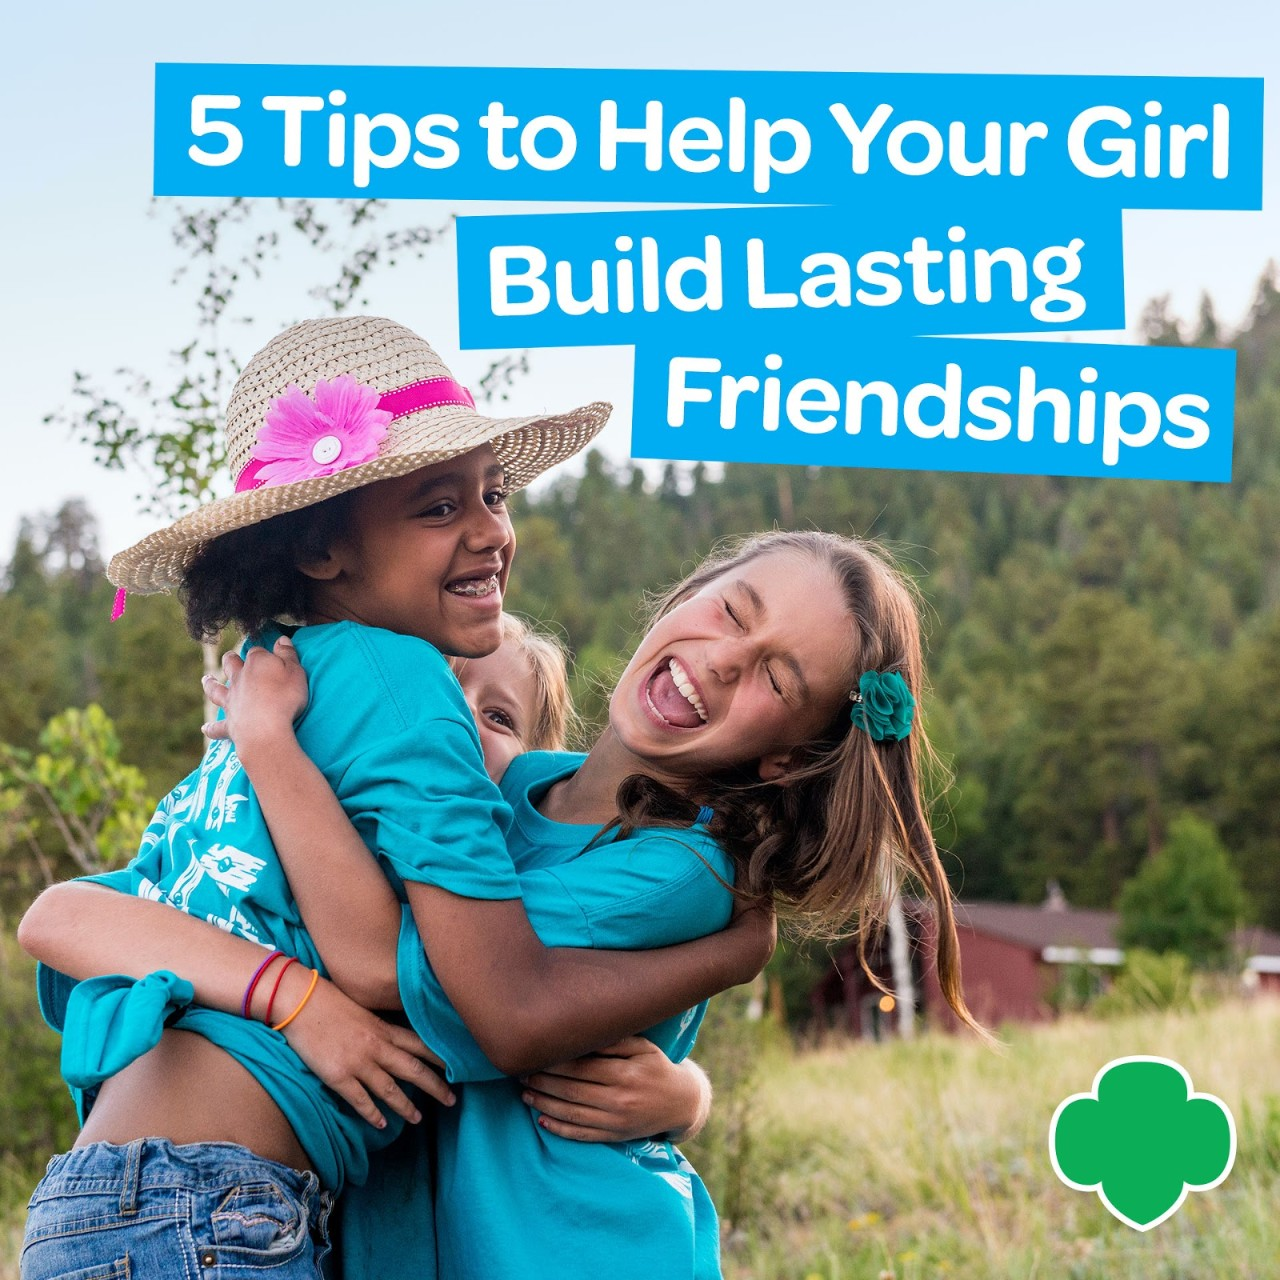 15_SO_C_Blog_5Tips-Friendship